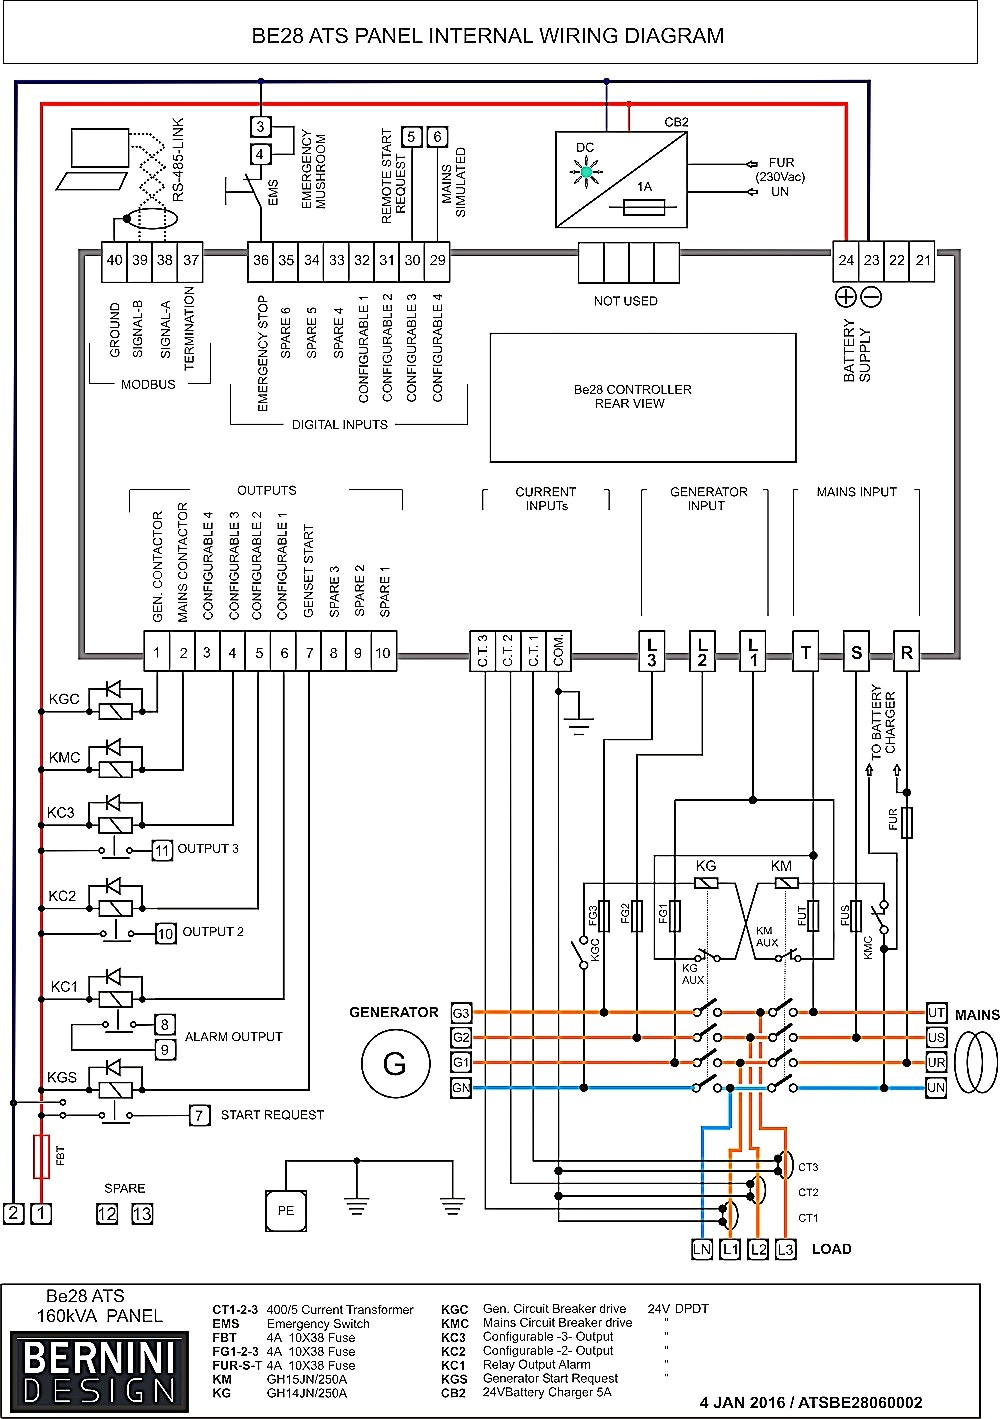 generac 200 amp service rated transfer switch wiring diagram rh blaknwyt co Generac Transfer Switch Installation For a 400 Amp Generac Transfer Switch Wiring